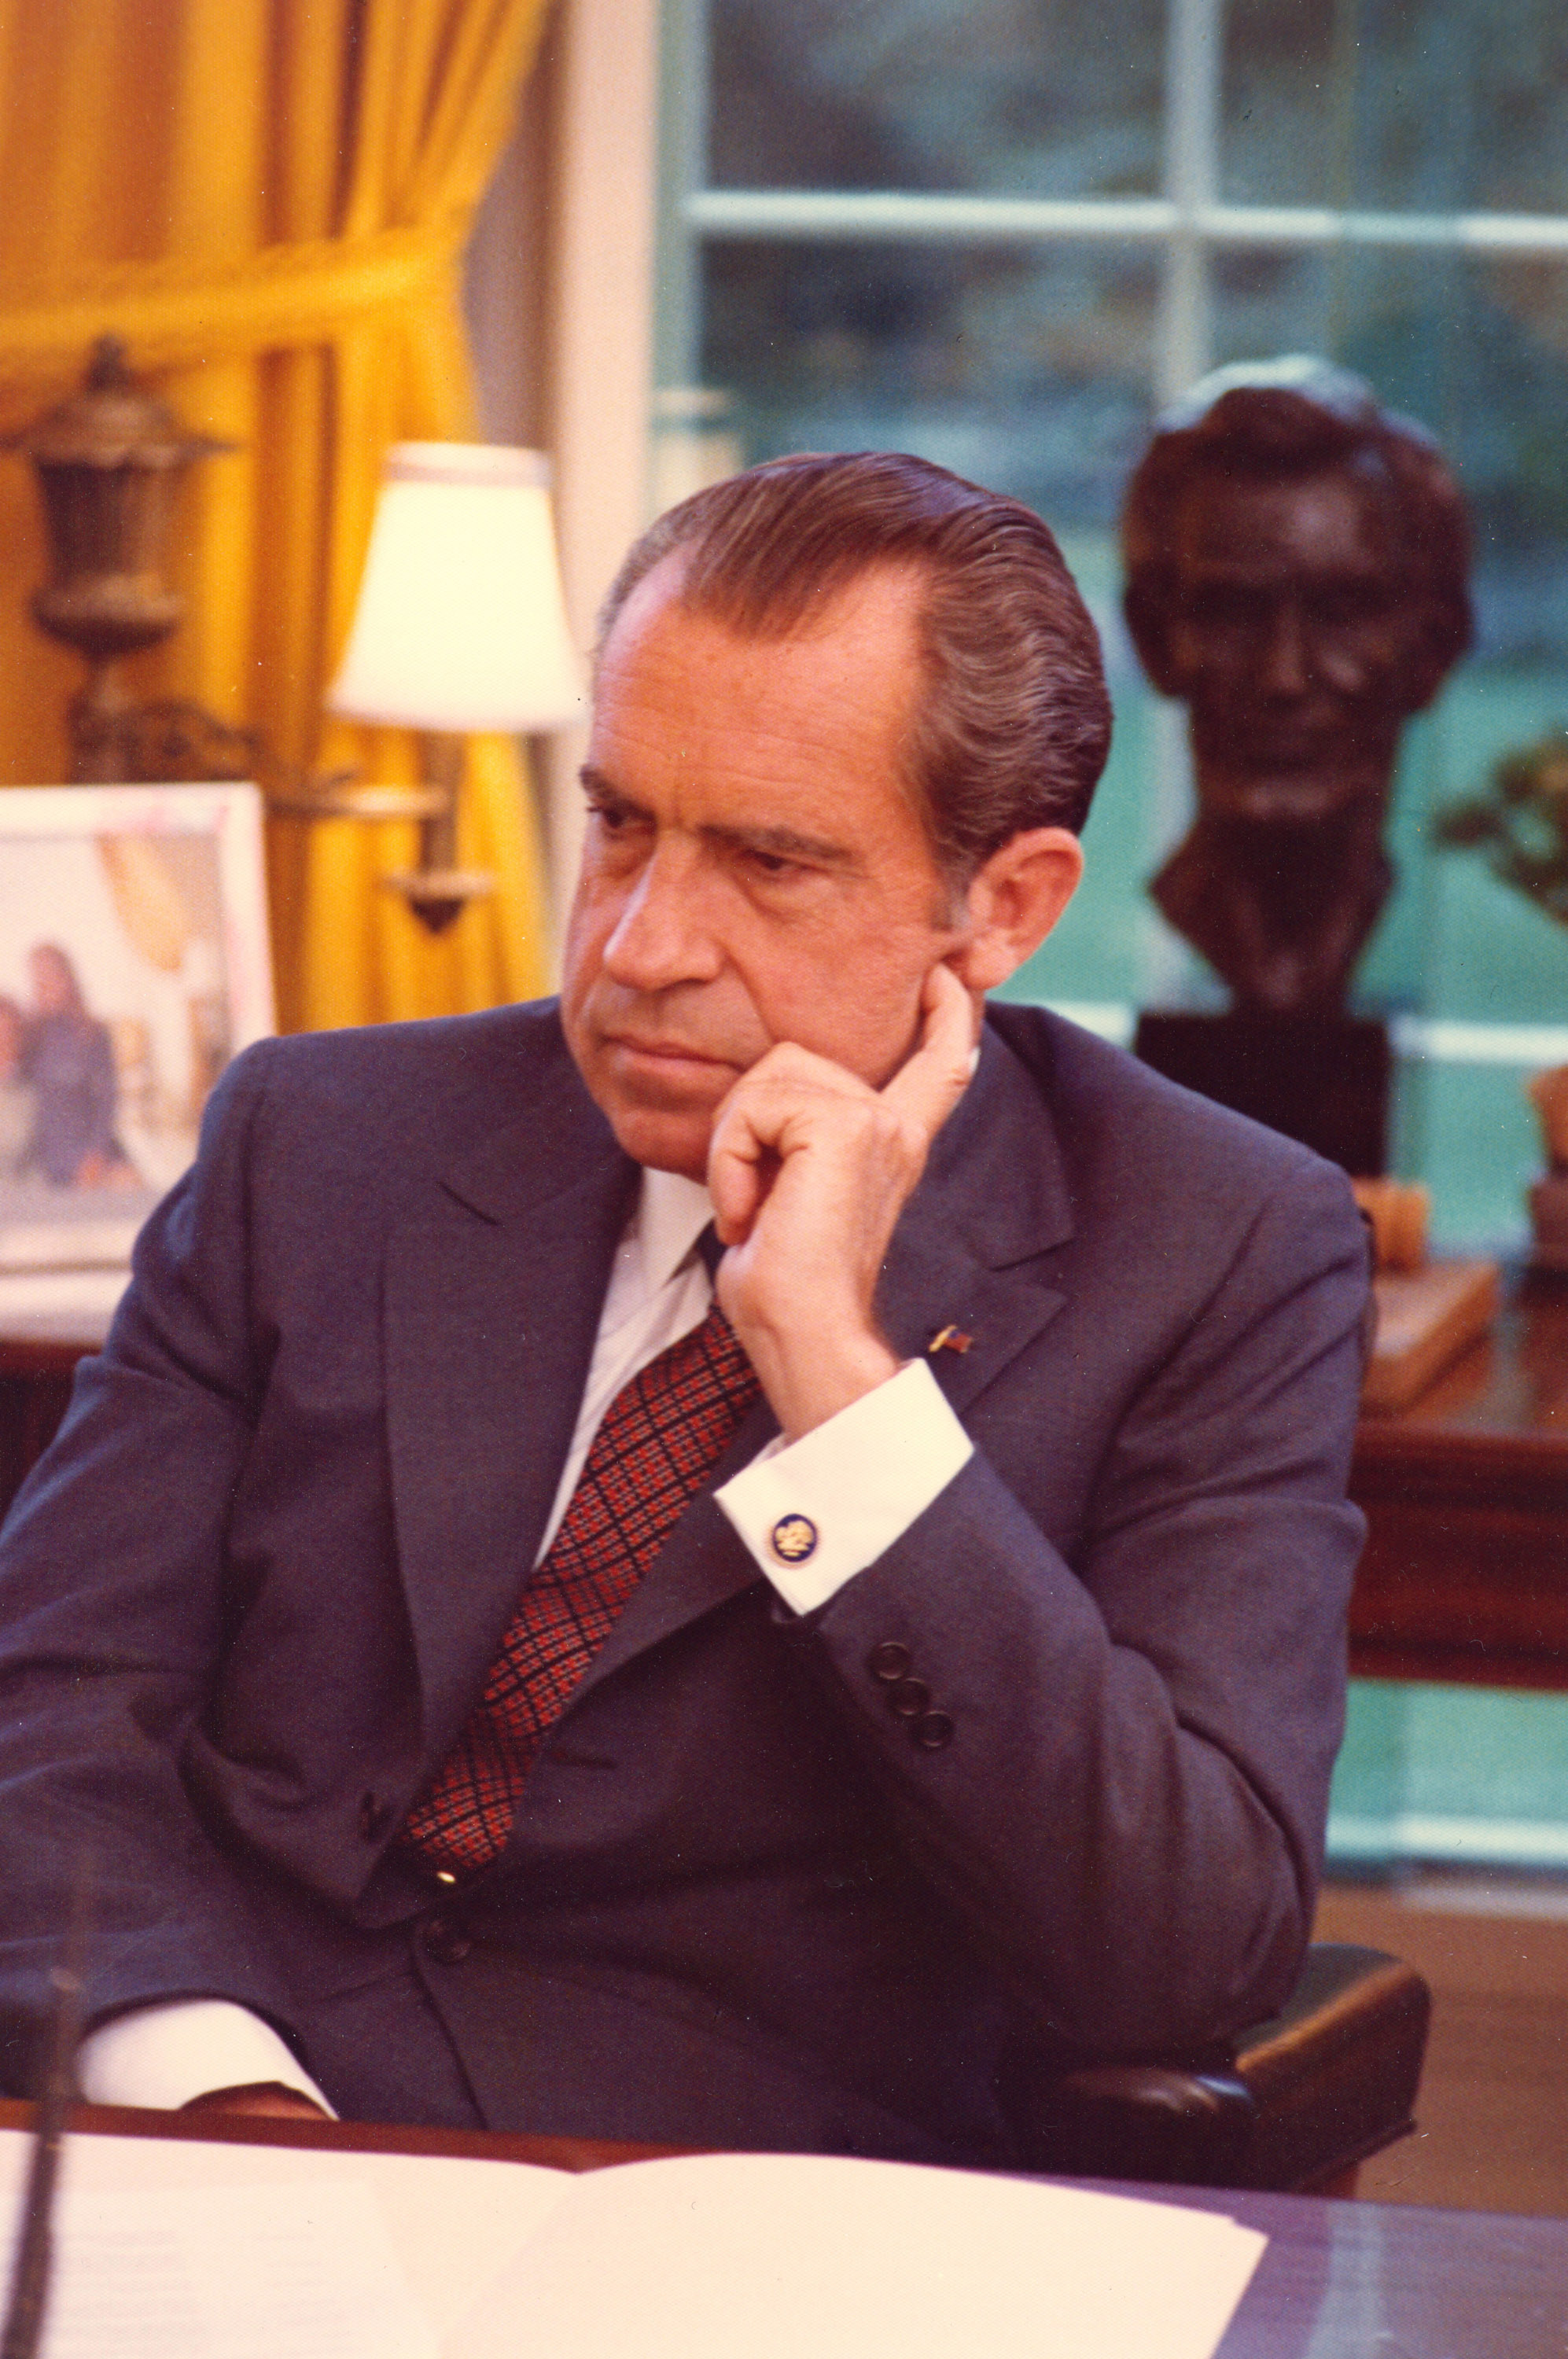 an introduction to the history of the president richard m nixon President richard m nixon body president (historycom), richard nixon was in oliver stone's nixon i introduction when president nixon.